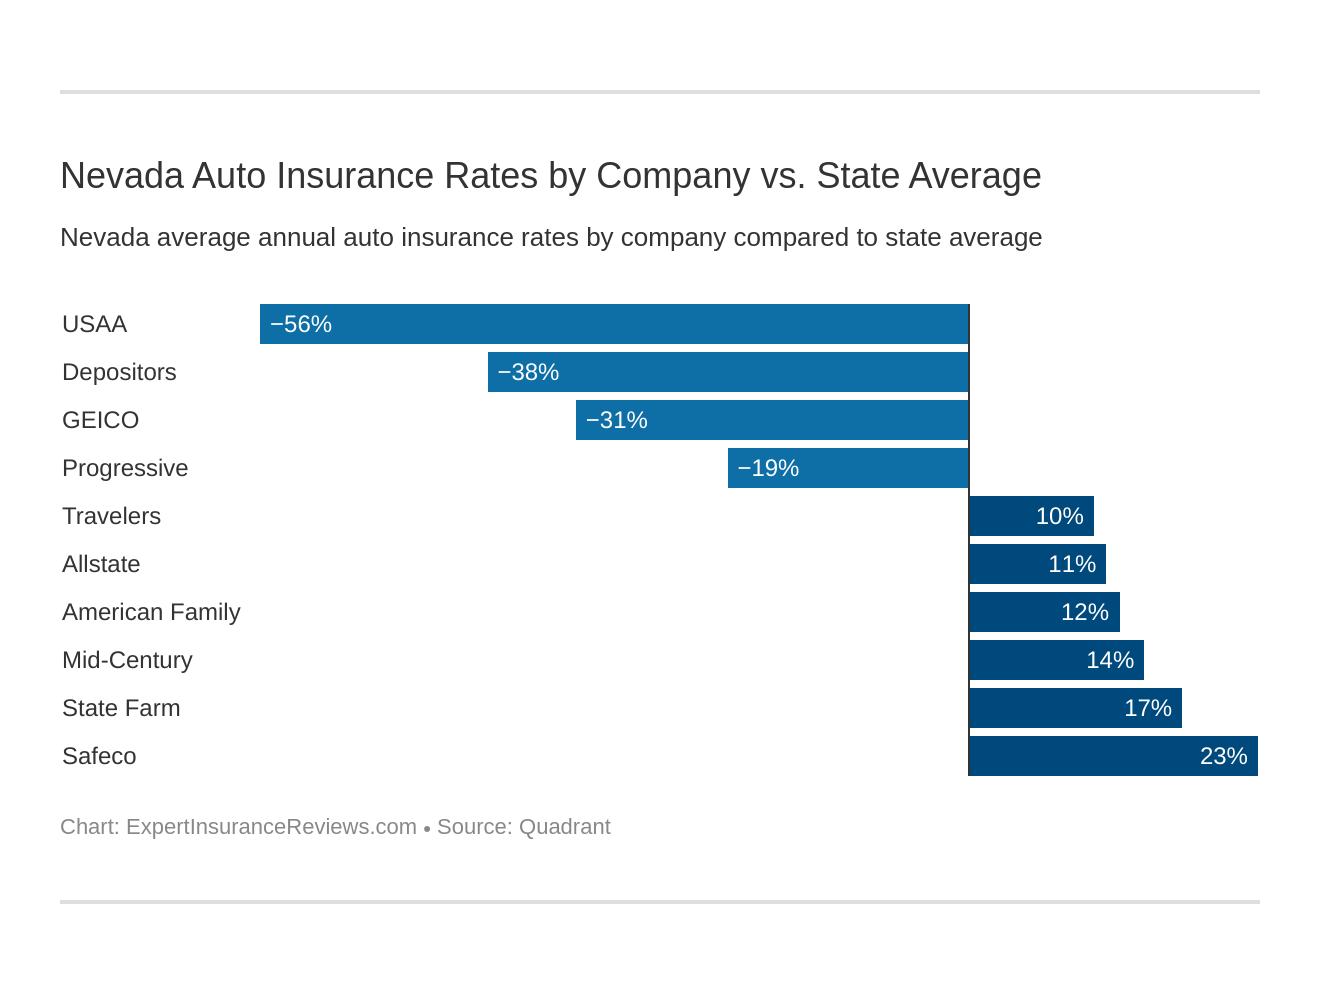 Nevada Auto Insurance Rates by Company vs. State Average